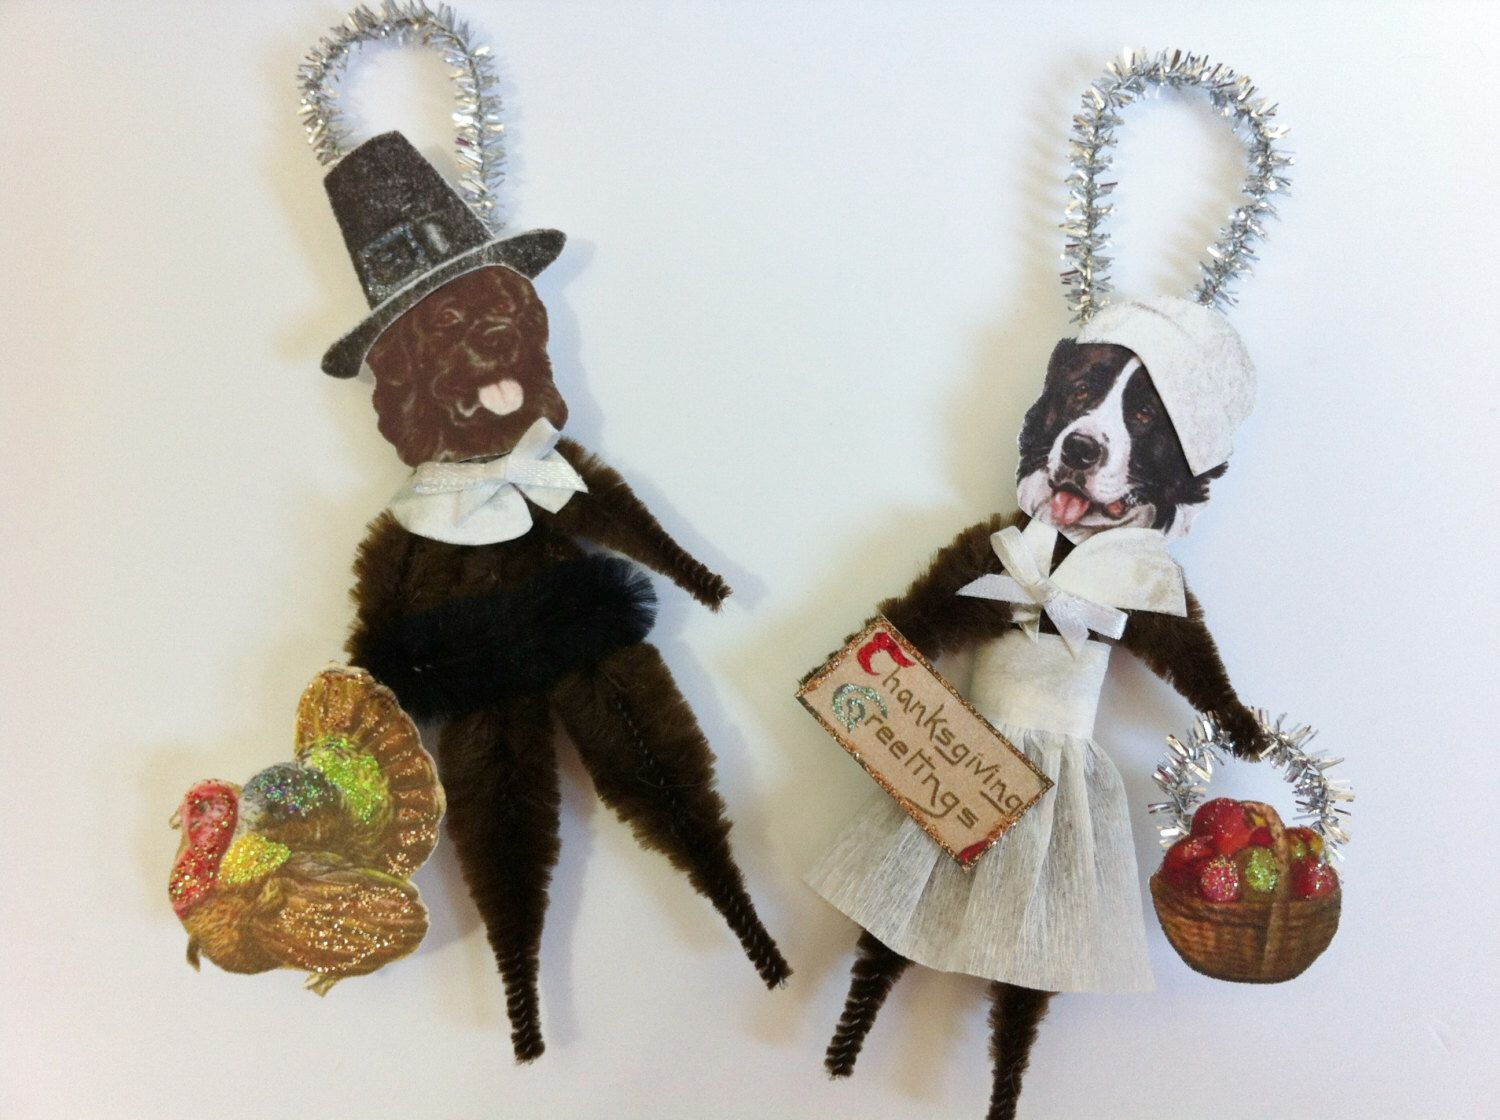 Newfoundland Dog THANKSGIVING PILGRIMS vintage style chenille ORNAMENTS set of 2 by StanleyAndStewart on Etsy https://www.etsy.com/listing/157243033/newfoundland-dog-thanksgiving-pilgrims